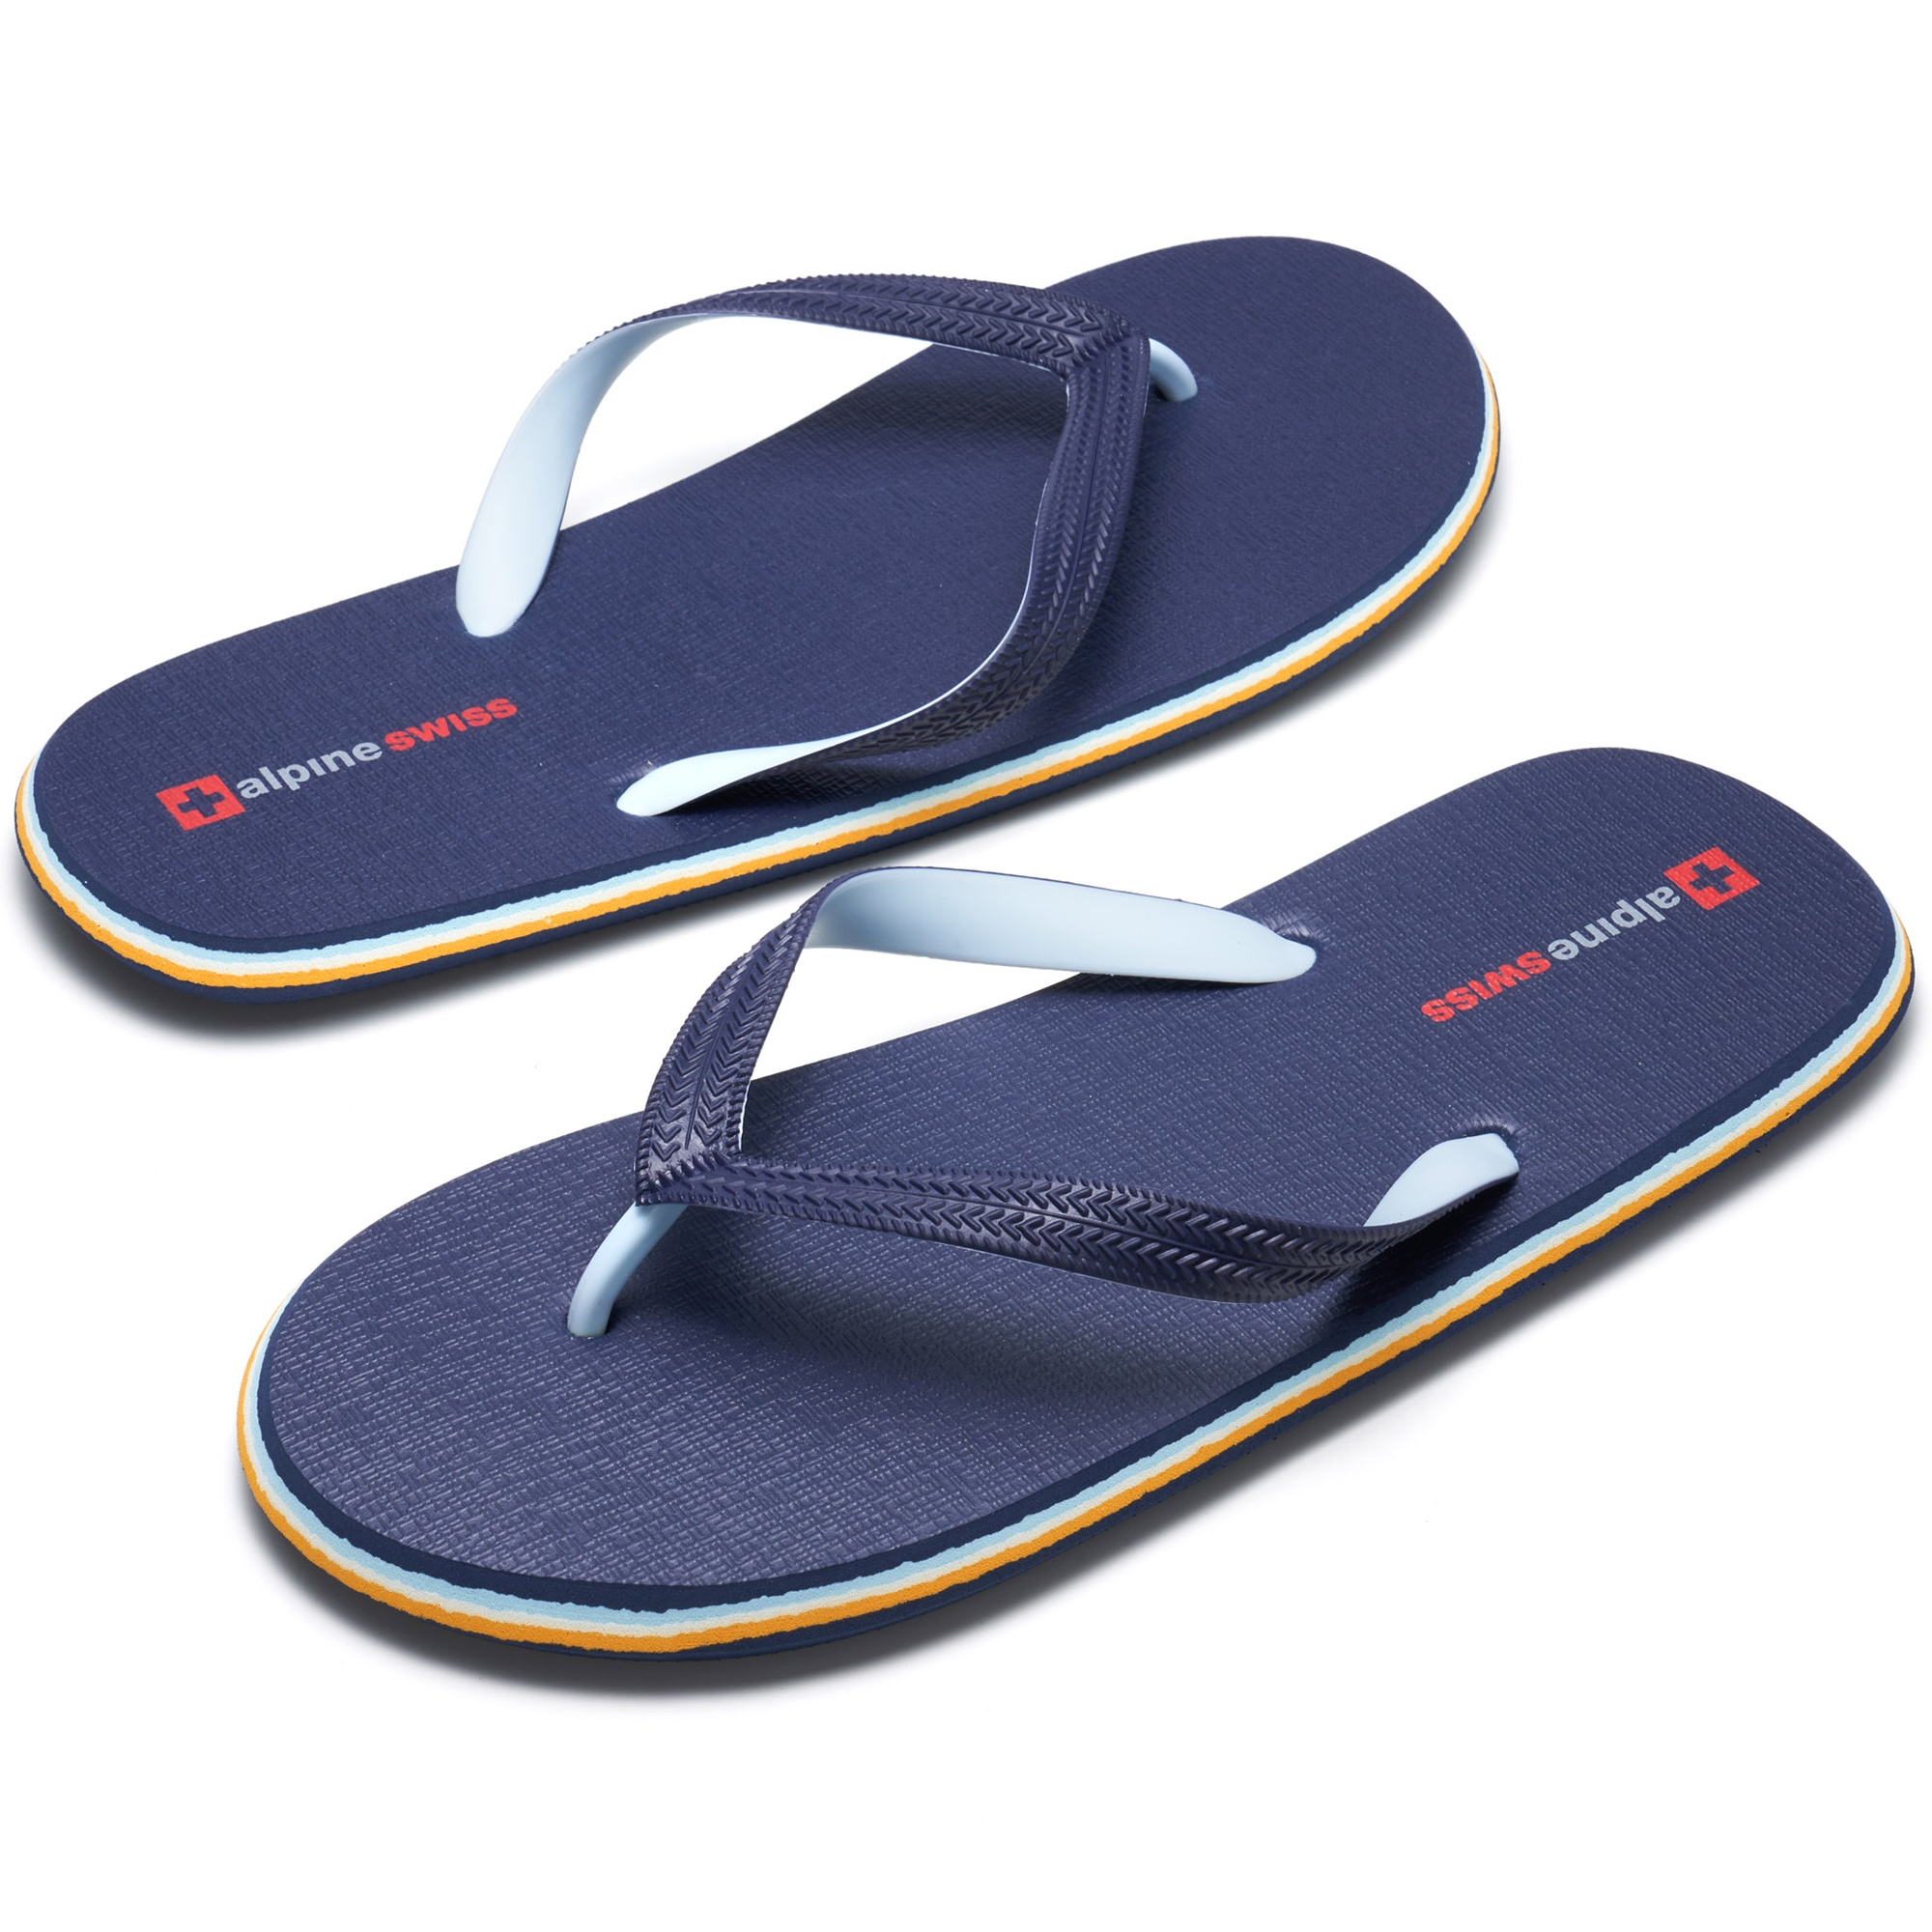 Alpine-Swiss-Mens-Flip-Flops-Beach-Sandals-Lightweight-EVA-Sole-Comfort-Thongs thumbnail 25